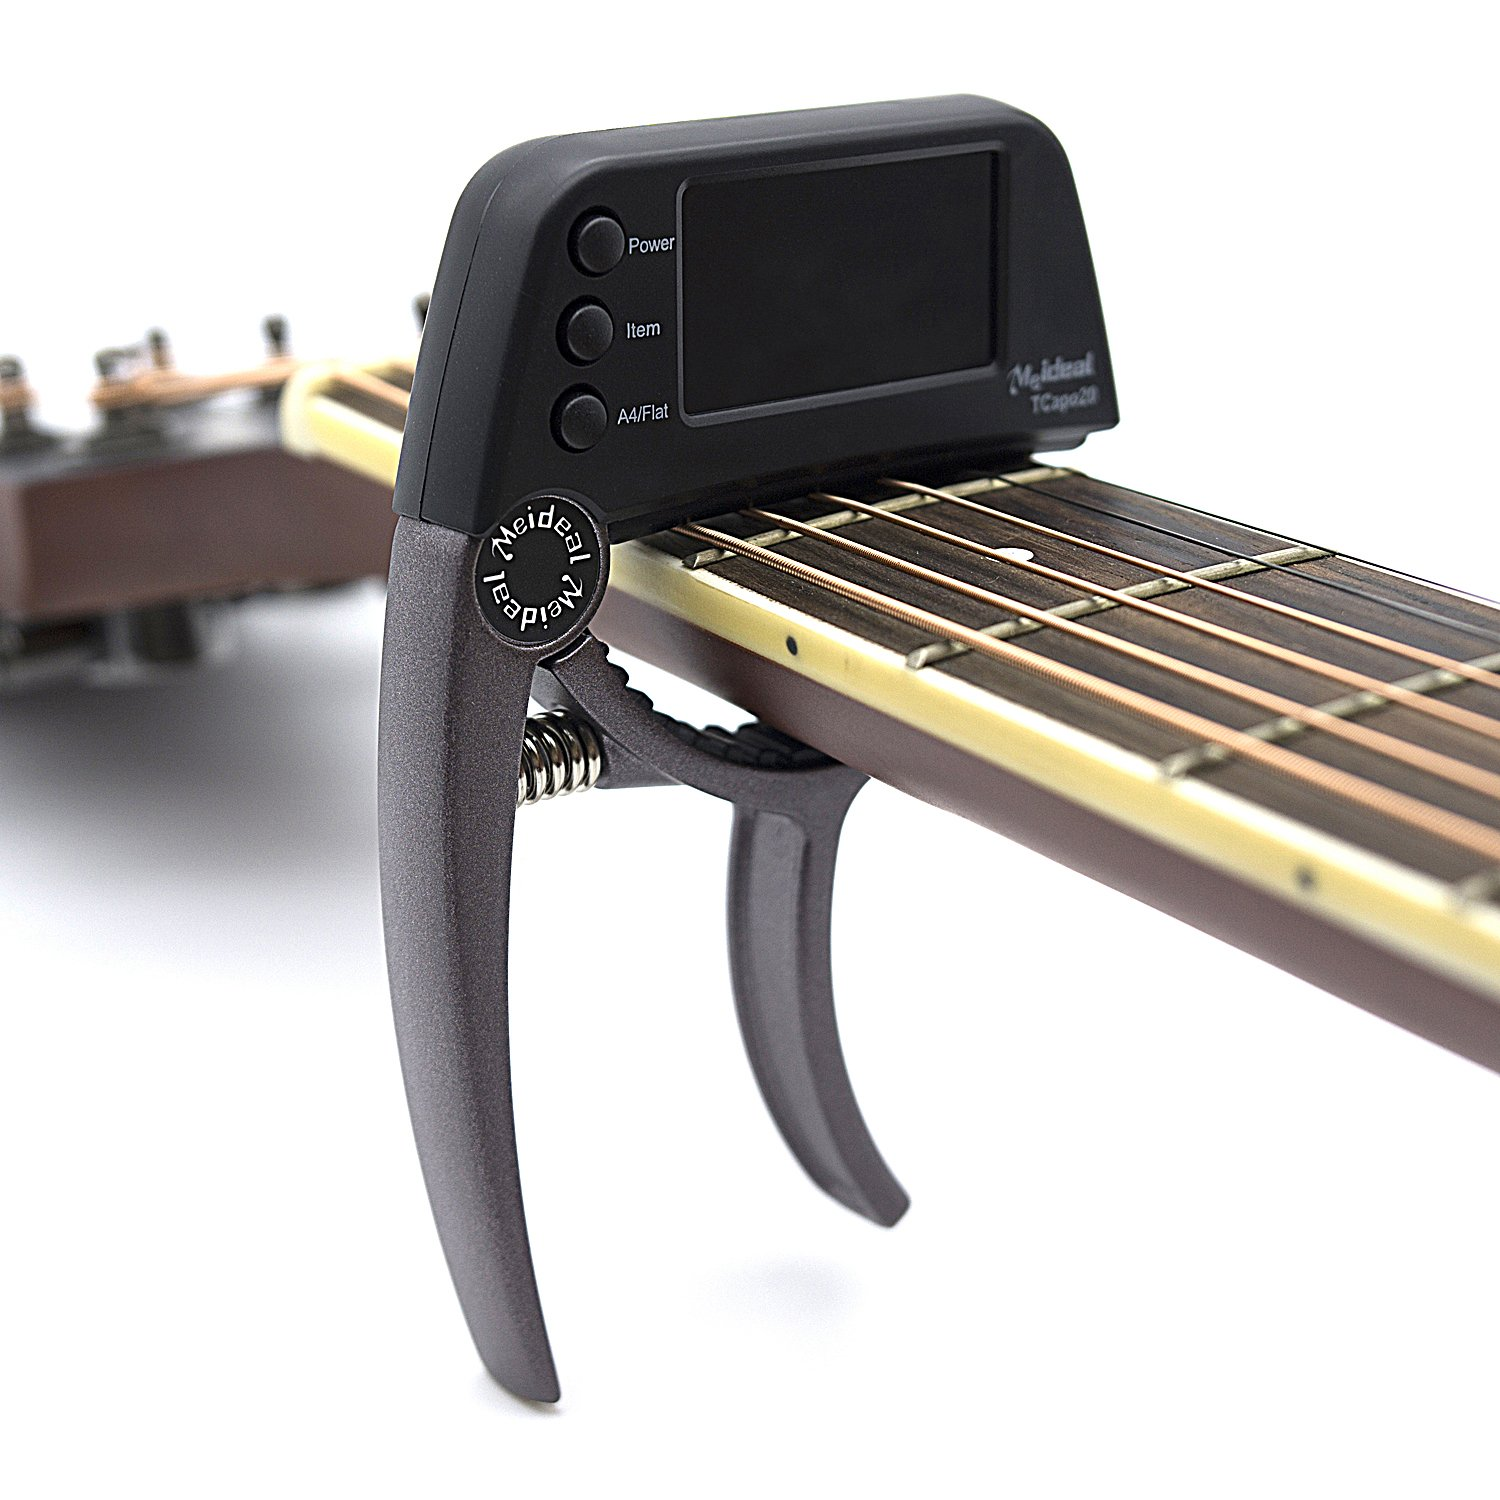 Professional Guitar Tuner,Loftstyle Chromatic Clip-on Tuner for Guitar With Rotational Double Color LCD Display Single-handed Pretty Accurate Tuner A4 Pitch Calibration 430Hz to 450Hz Purple